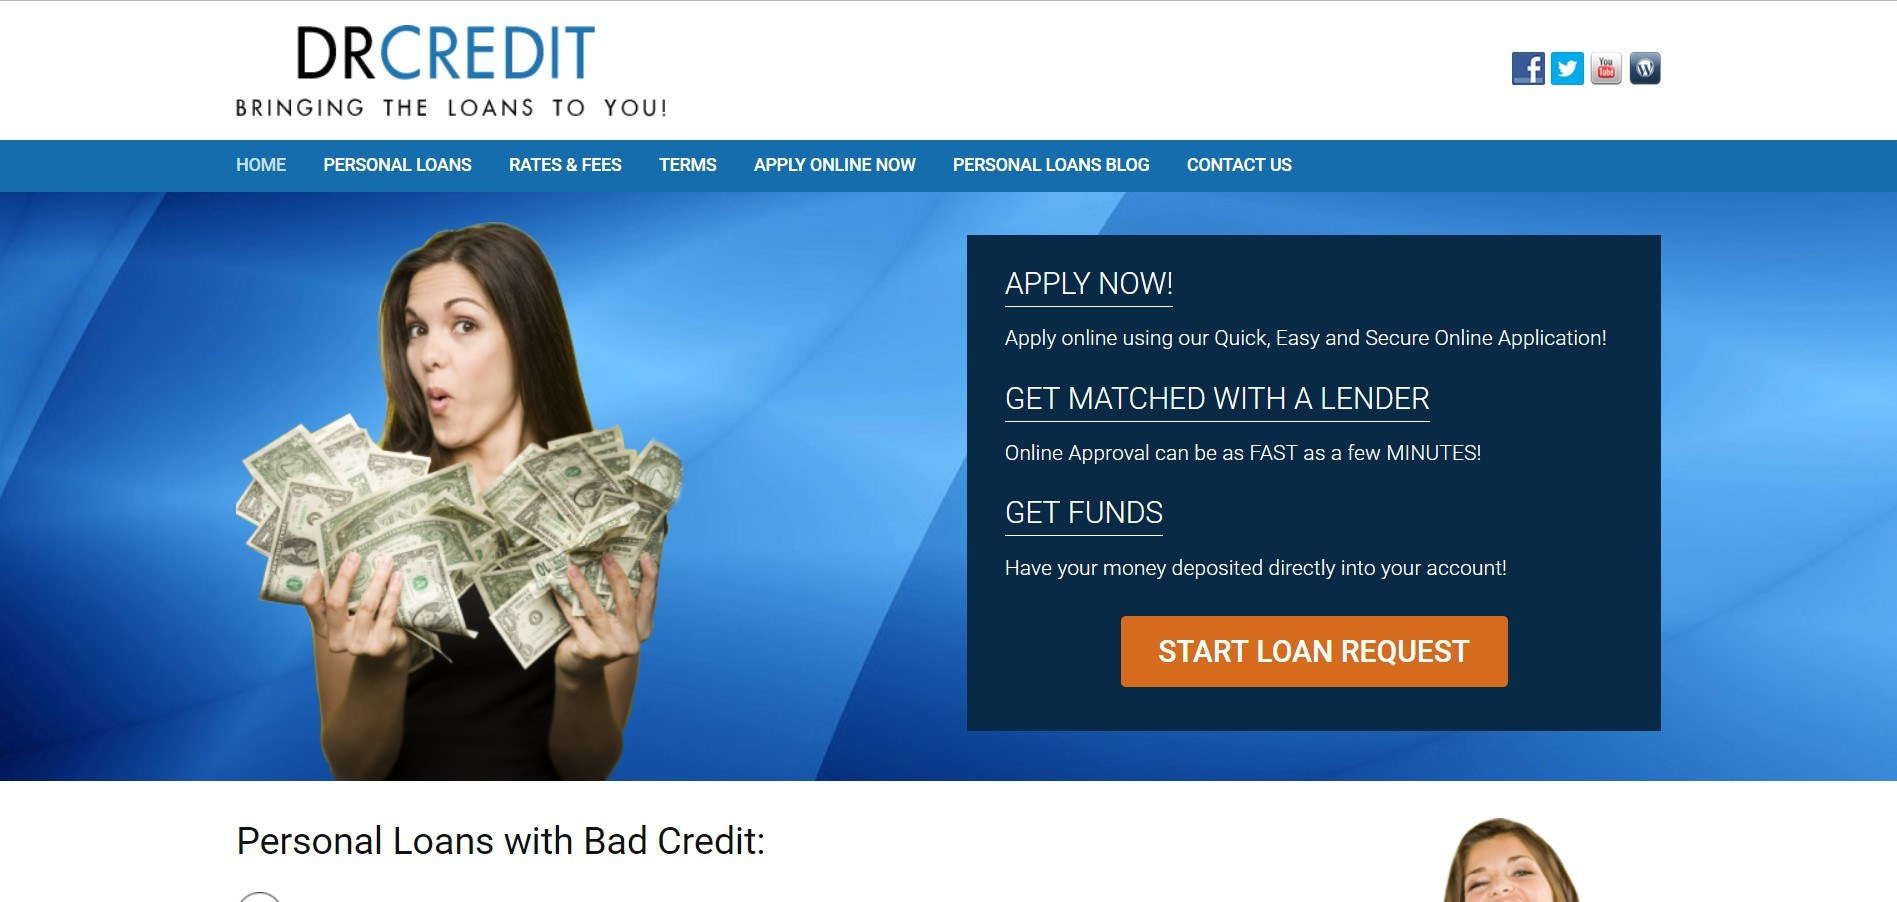 this screenshot has a blue background, a dark blue text box with an orange call to action button, and the image of a woman holding cash in both hands.